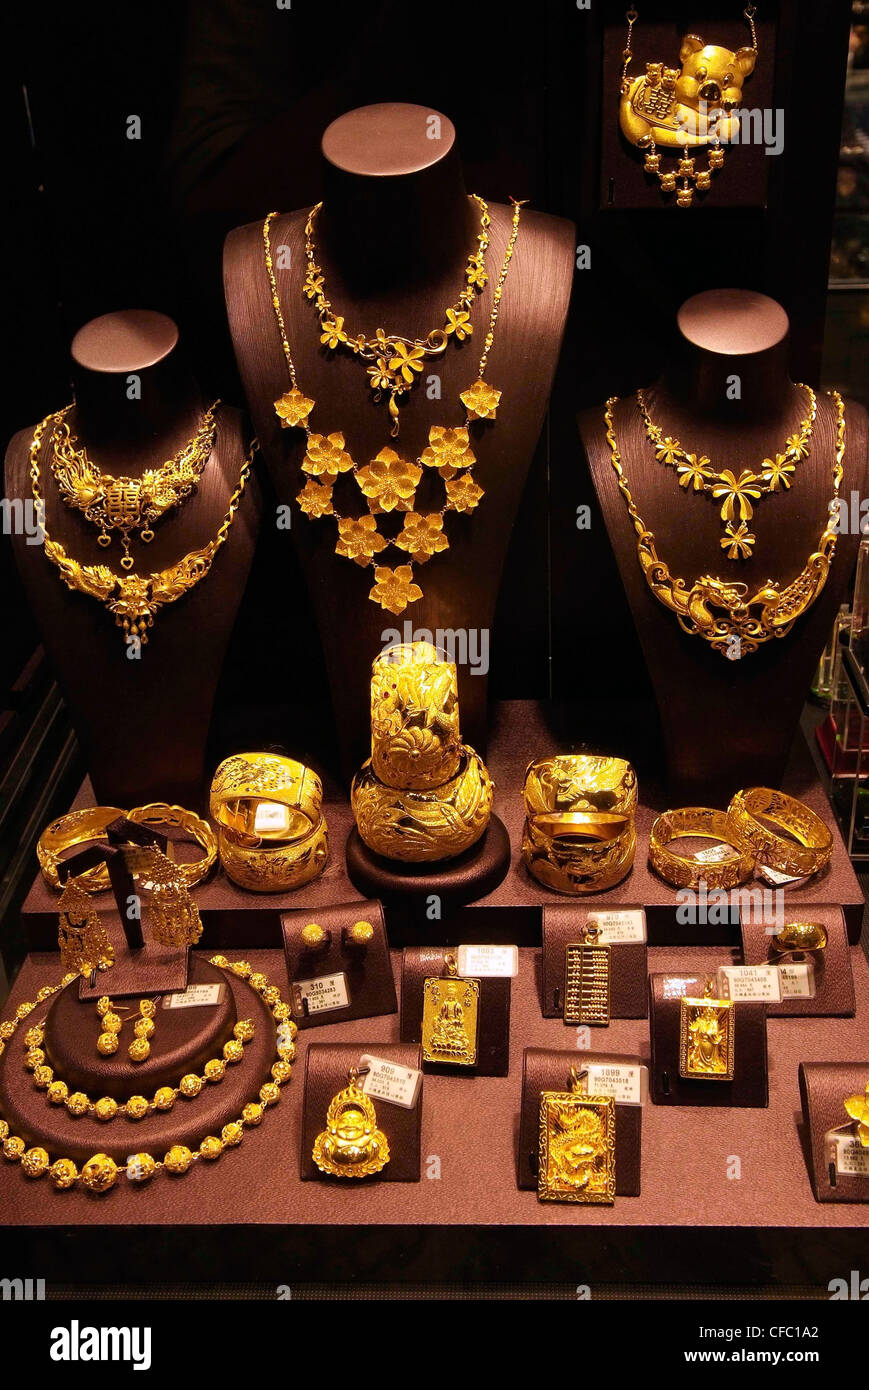 wikimedia bazar wiki a jewellery file commons shopping in shop naran